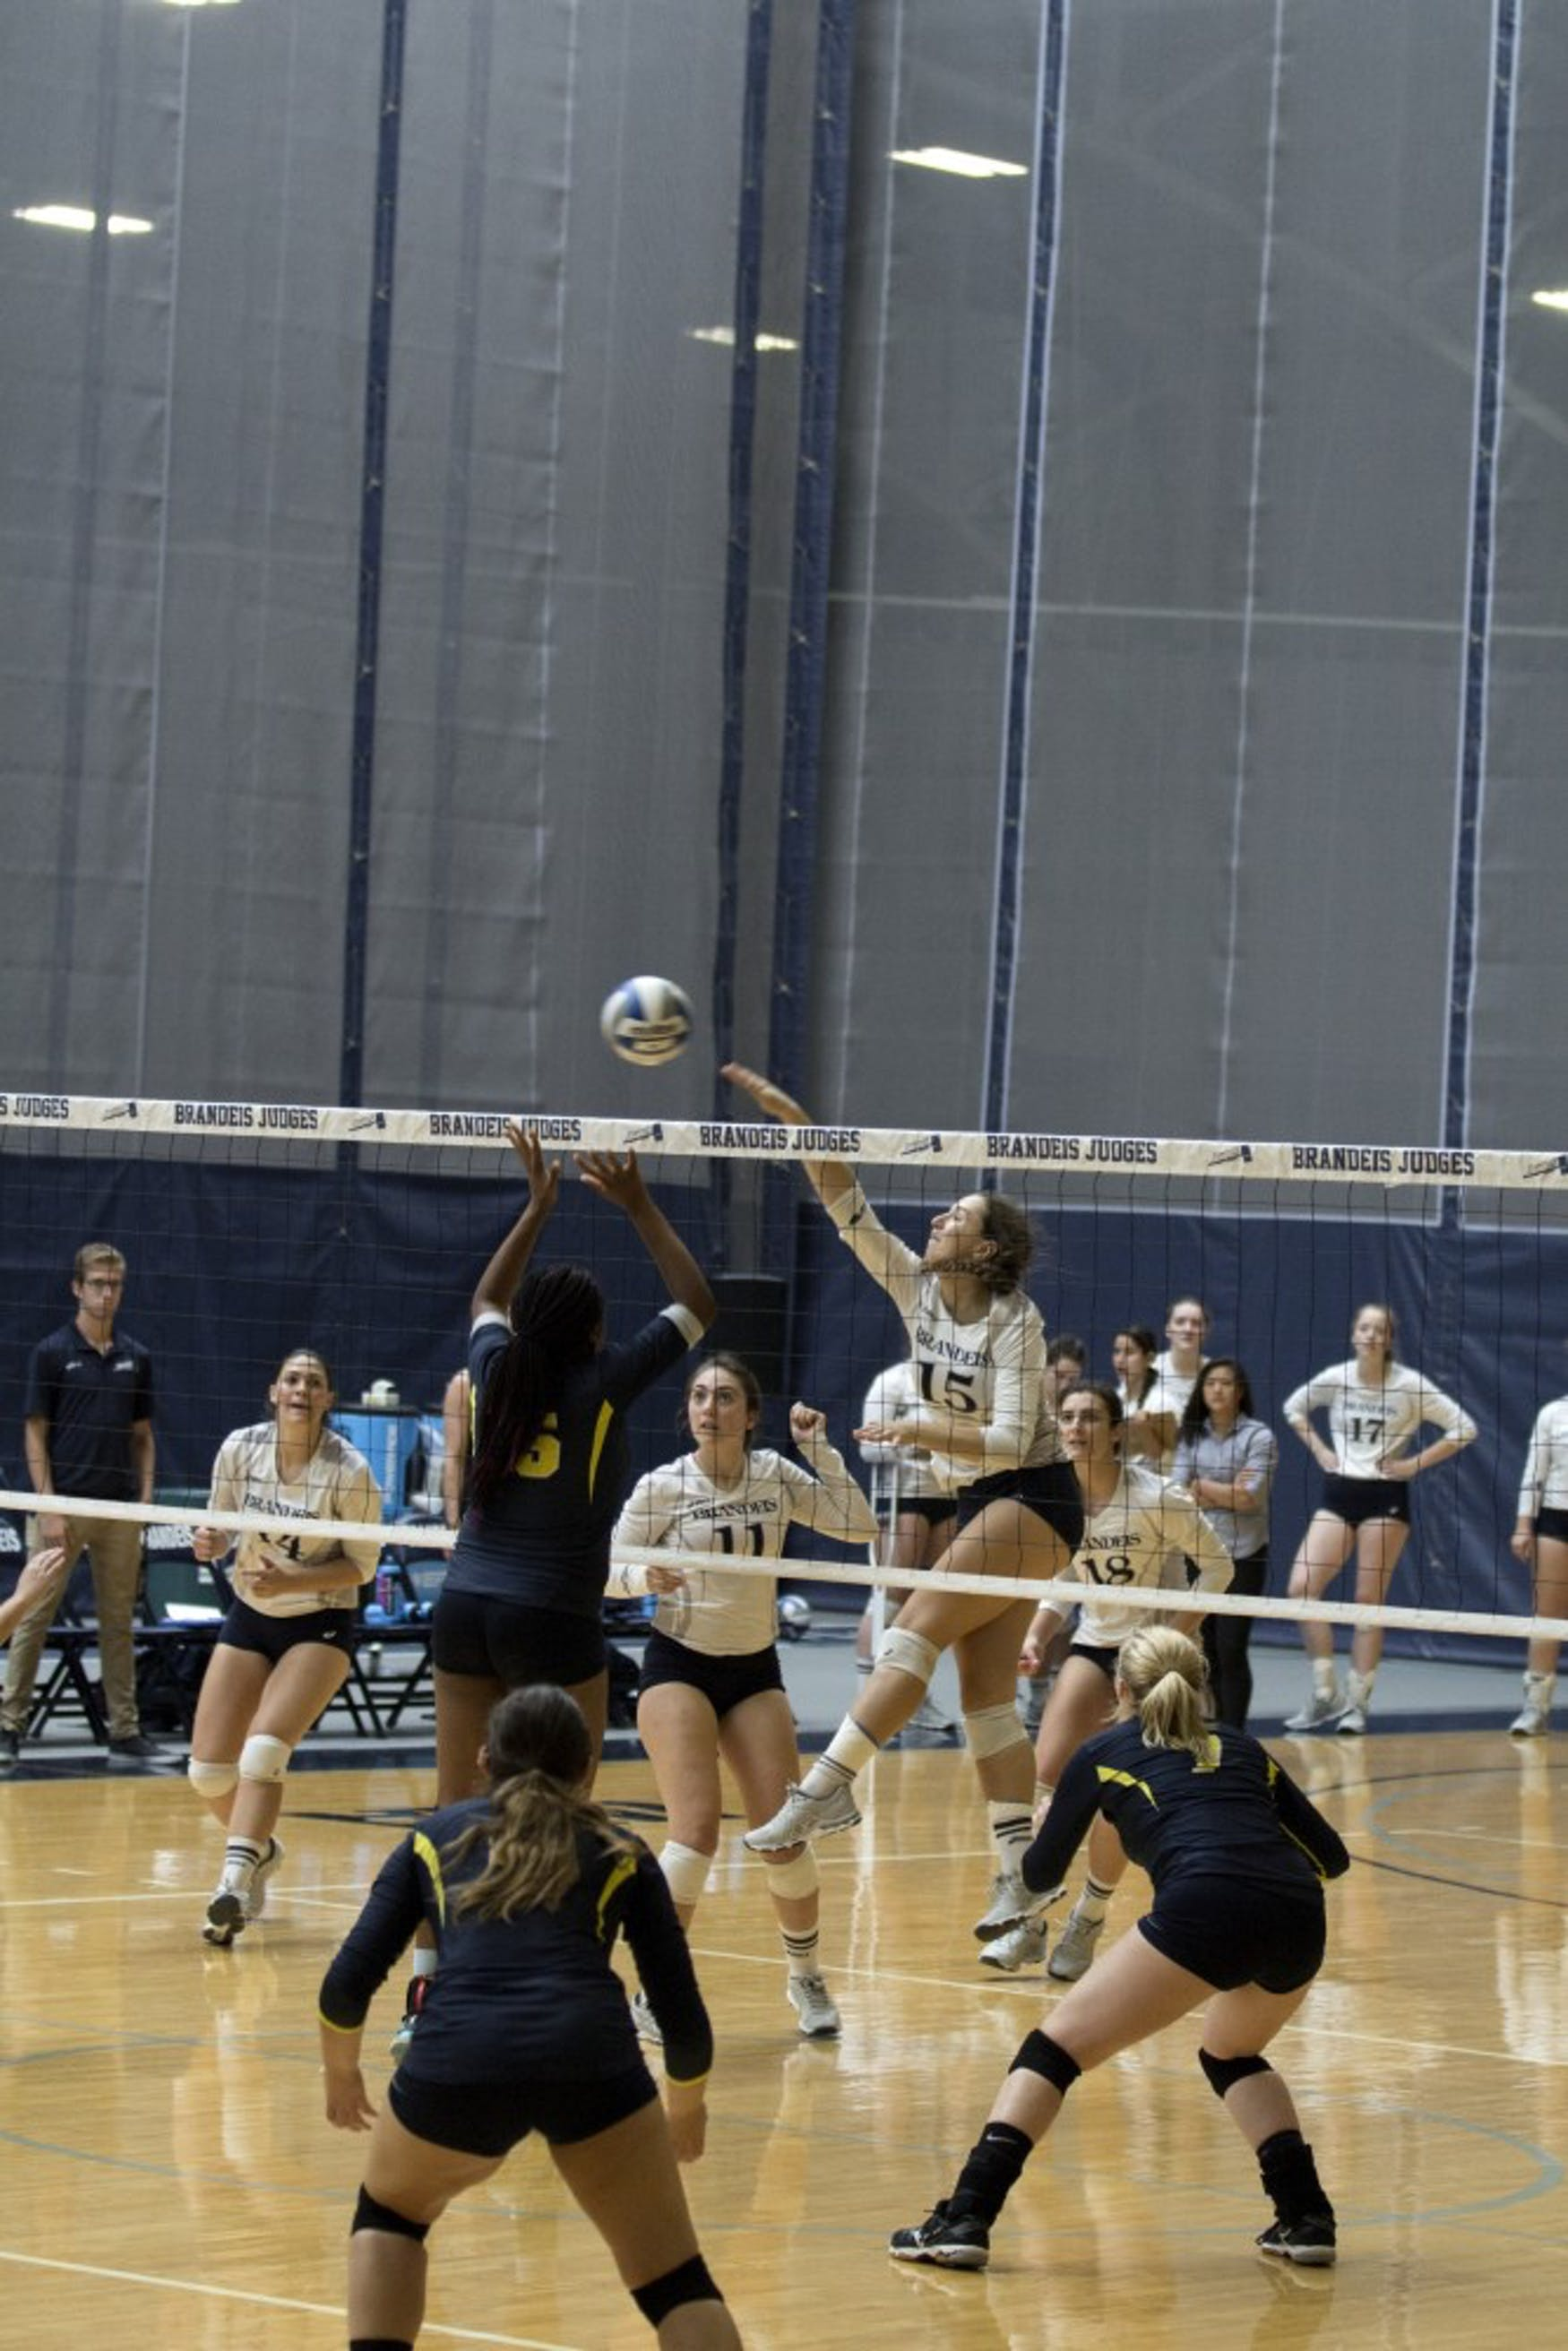 volleyball-vs-umass-dartmouth-10-7-17-nw-0049-2